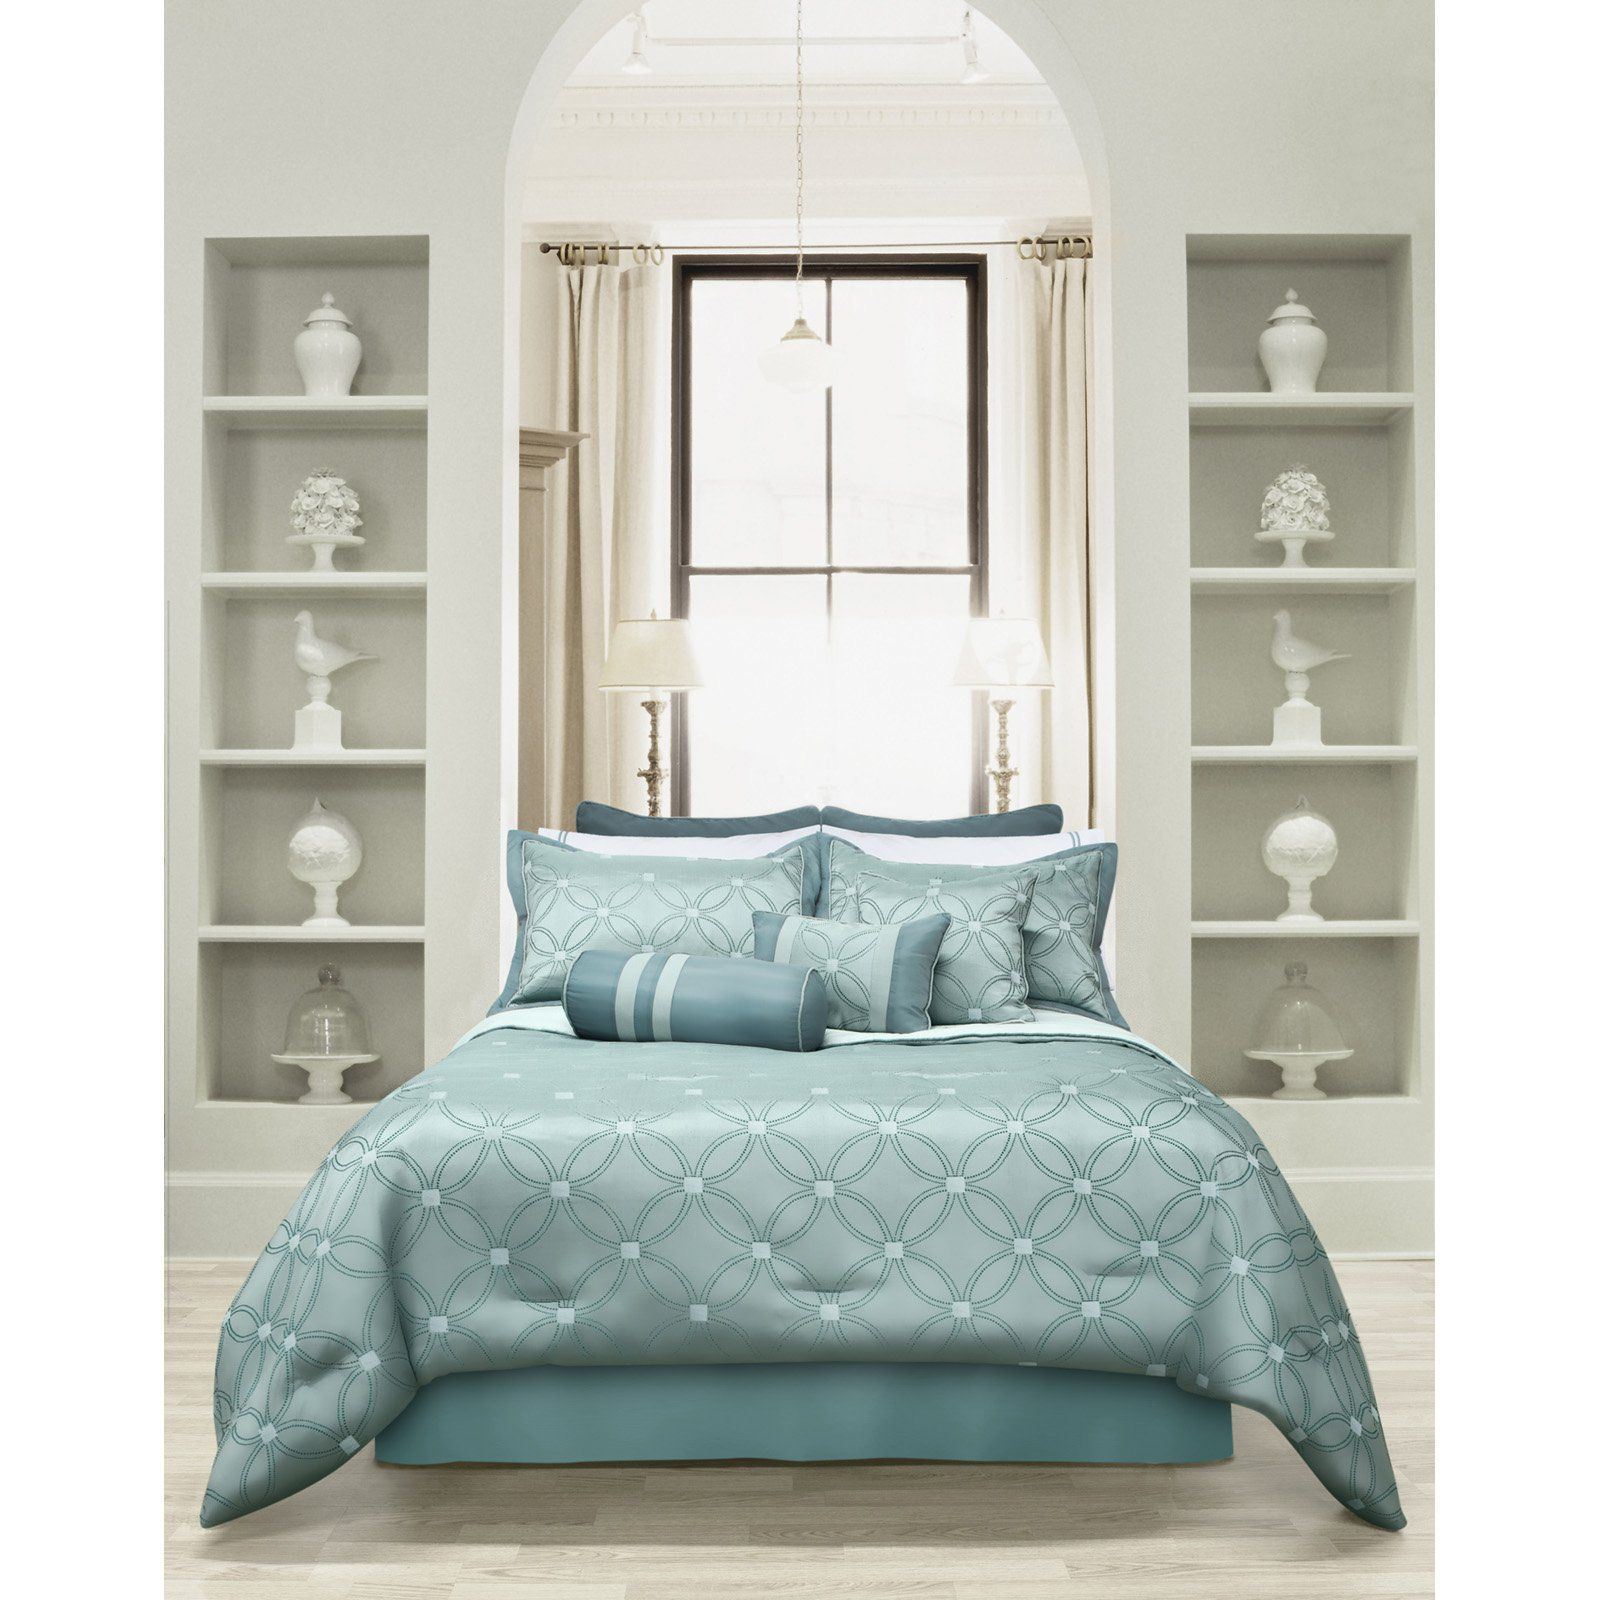 Universe 7 Piece Comforter Set by Safdie and Co - 60297.7Q.19